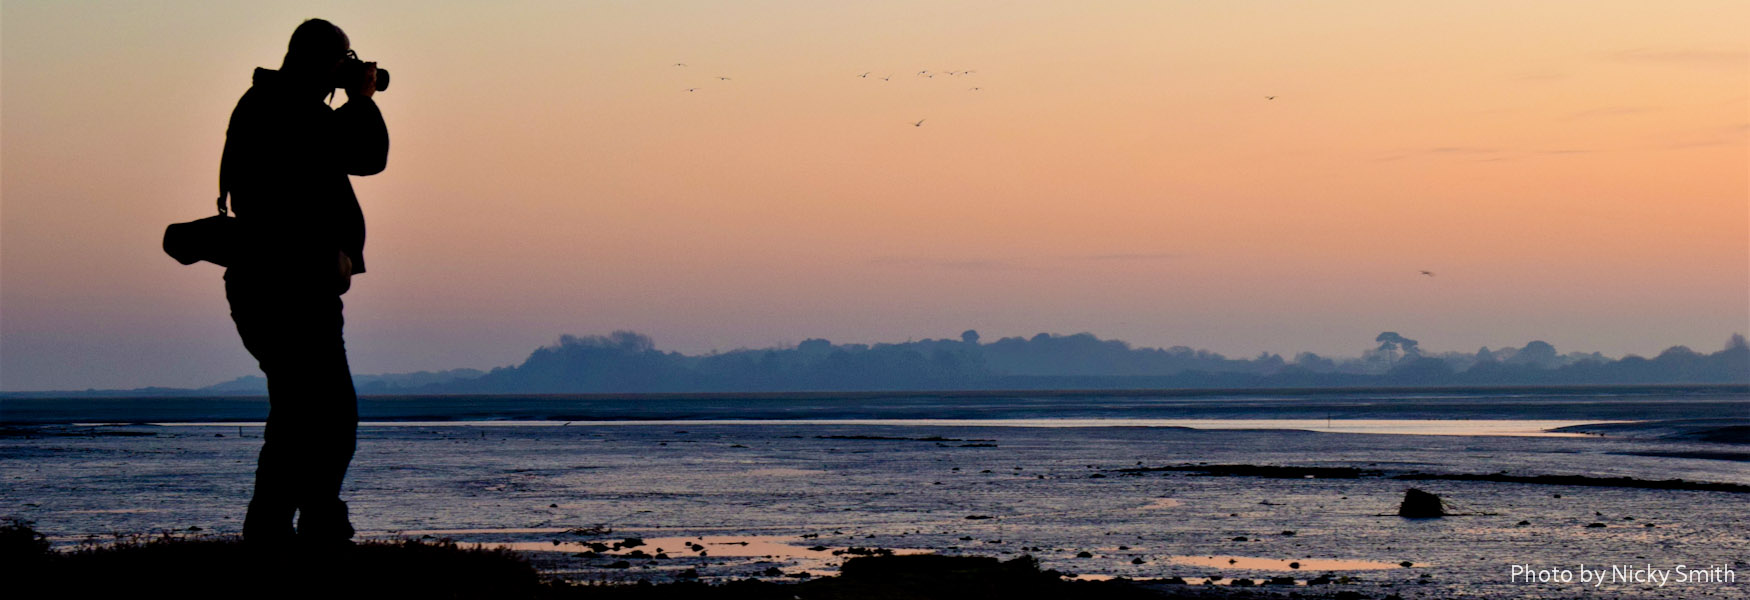 Pagham Harbour bird Photography